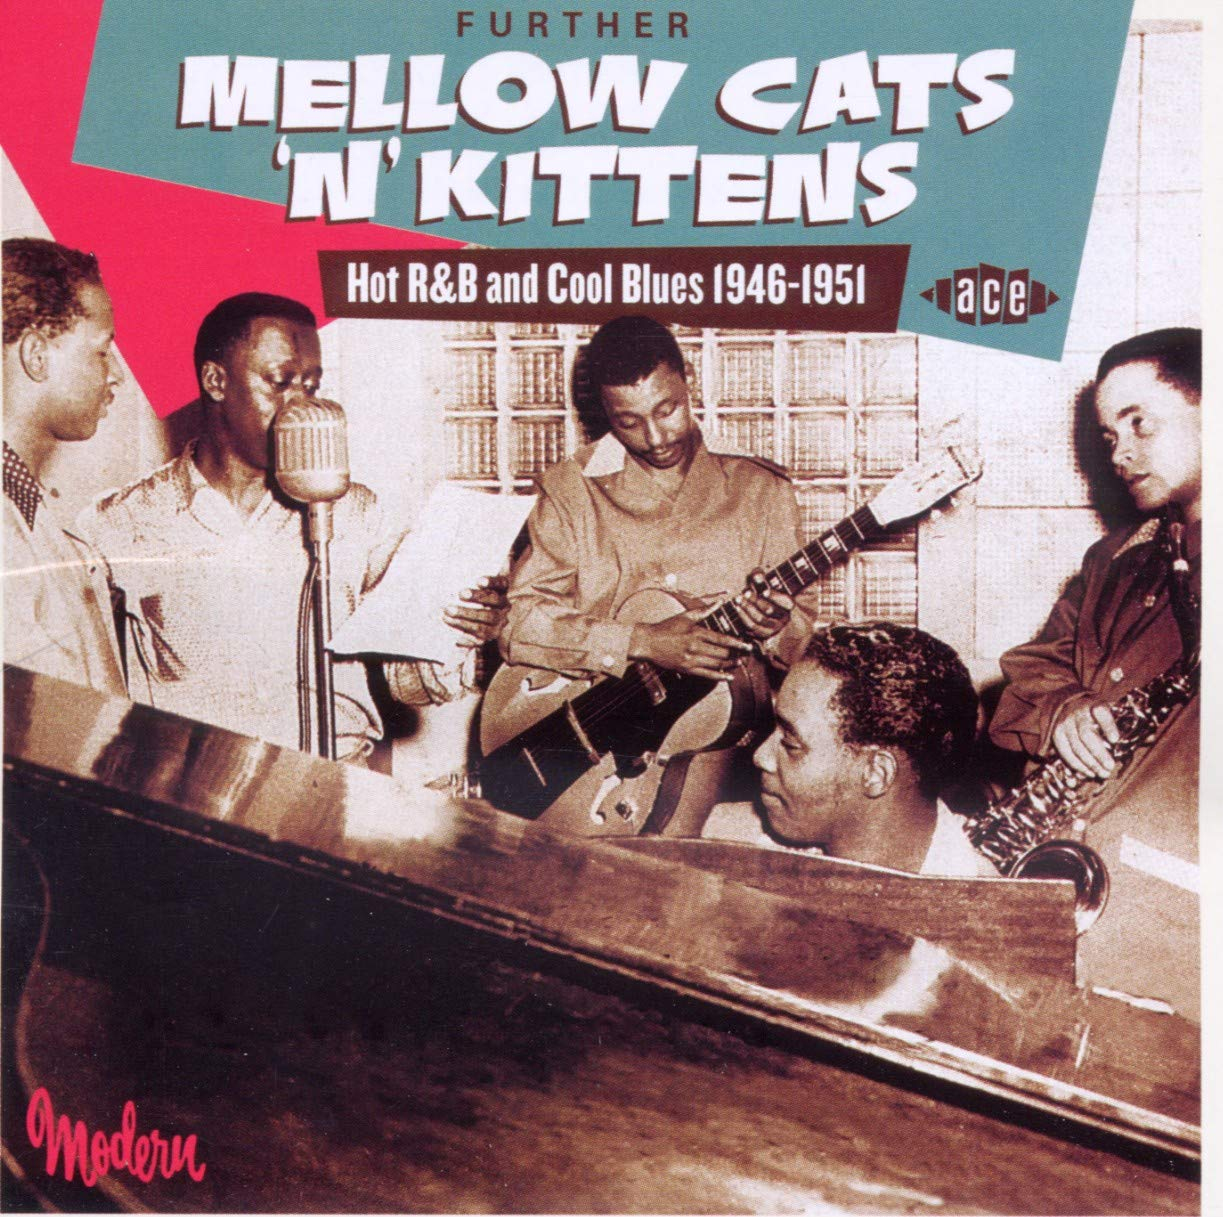 Further Mellow Cats 'N' Financial sales sale Cheap mail order sales Kittens: Hot and Blues Cool 1946-195 RB